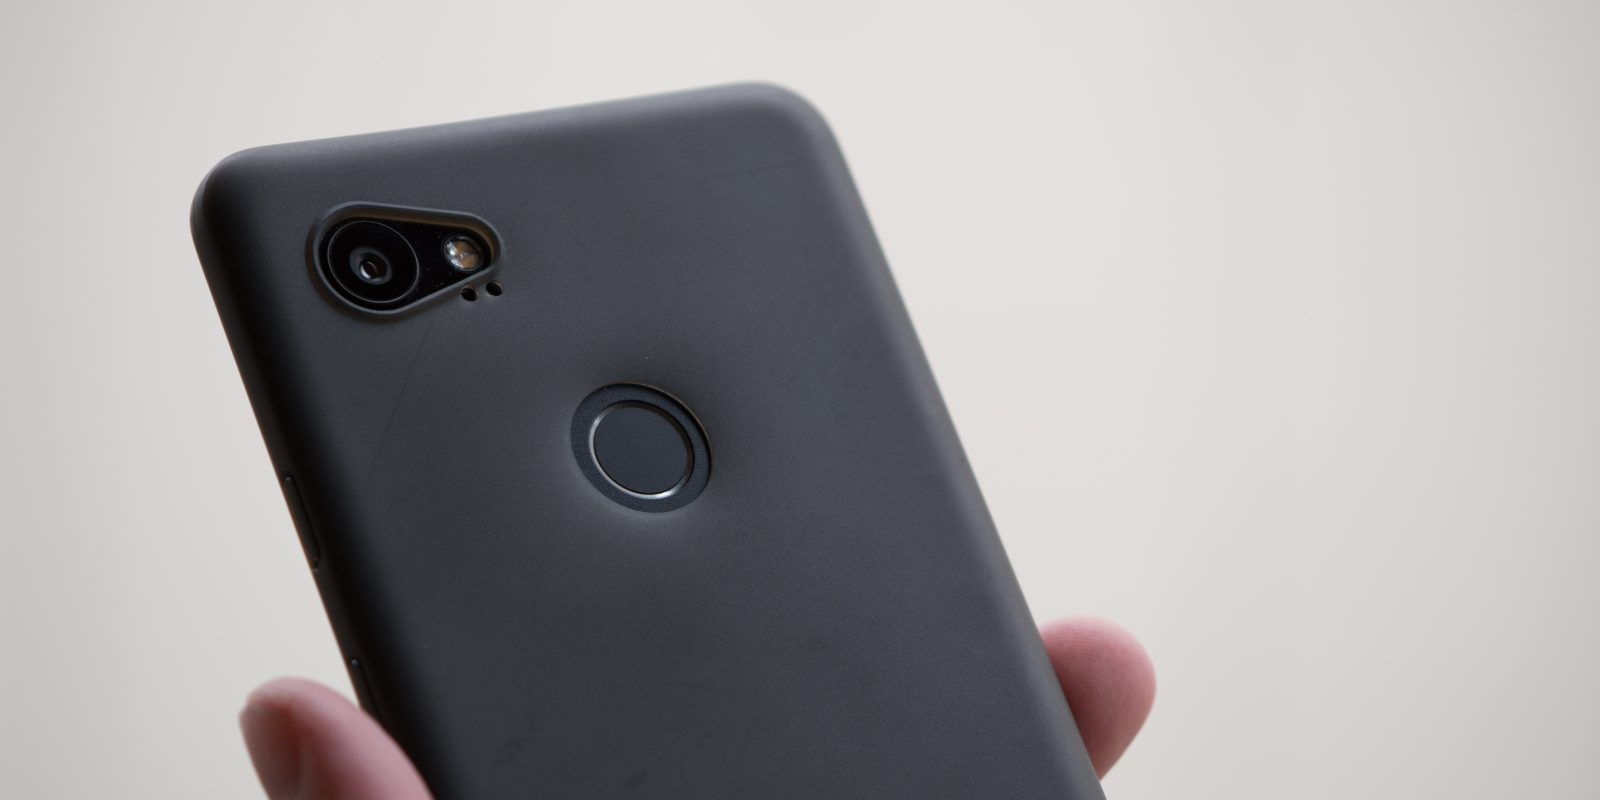 low priced d1baa 58654 Review: Peel's Google Pixel 2 case sold me on super-thin cases ...